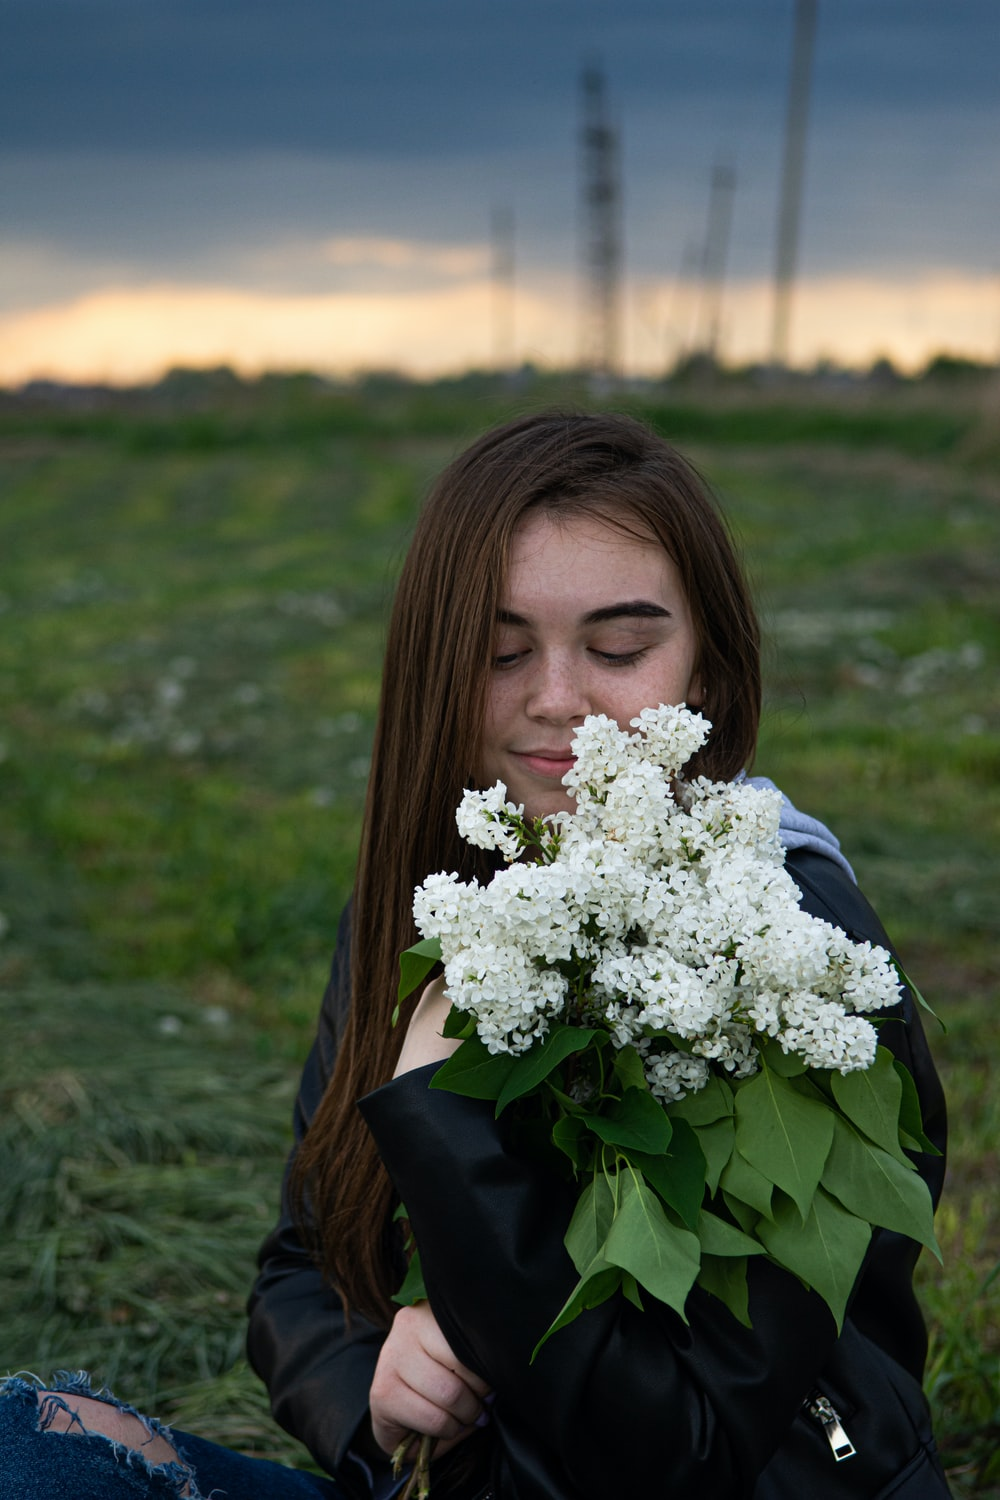 woman in blue long sleeve shirt holding white flowers